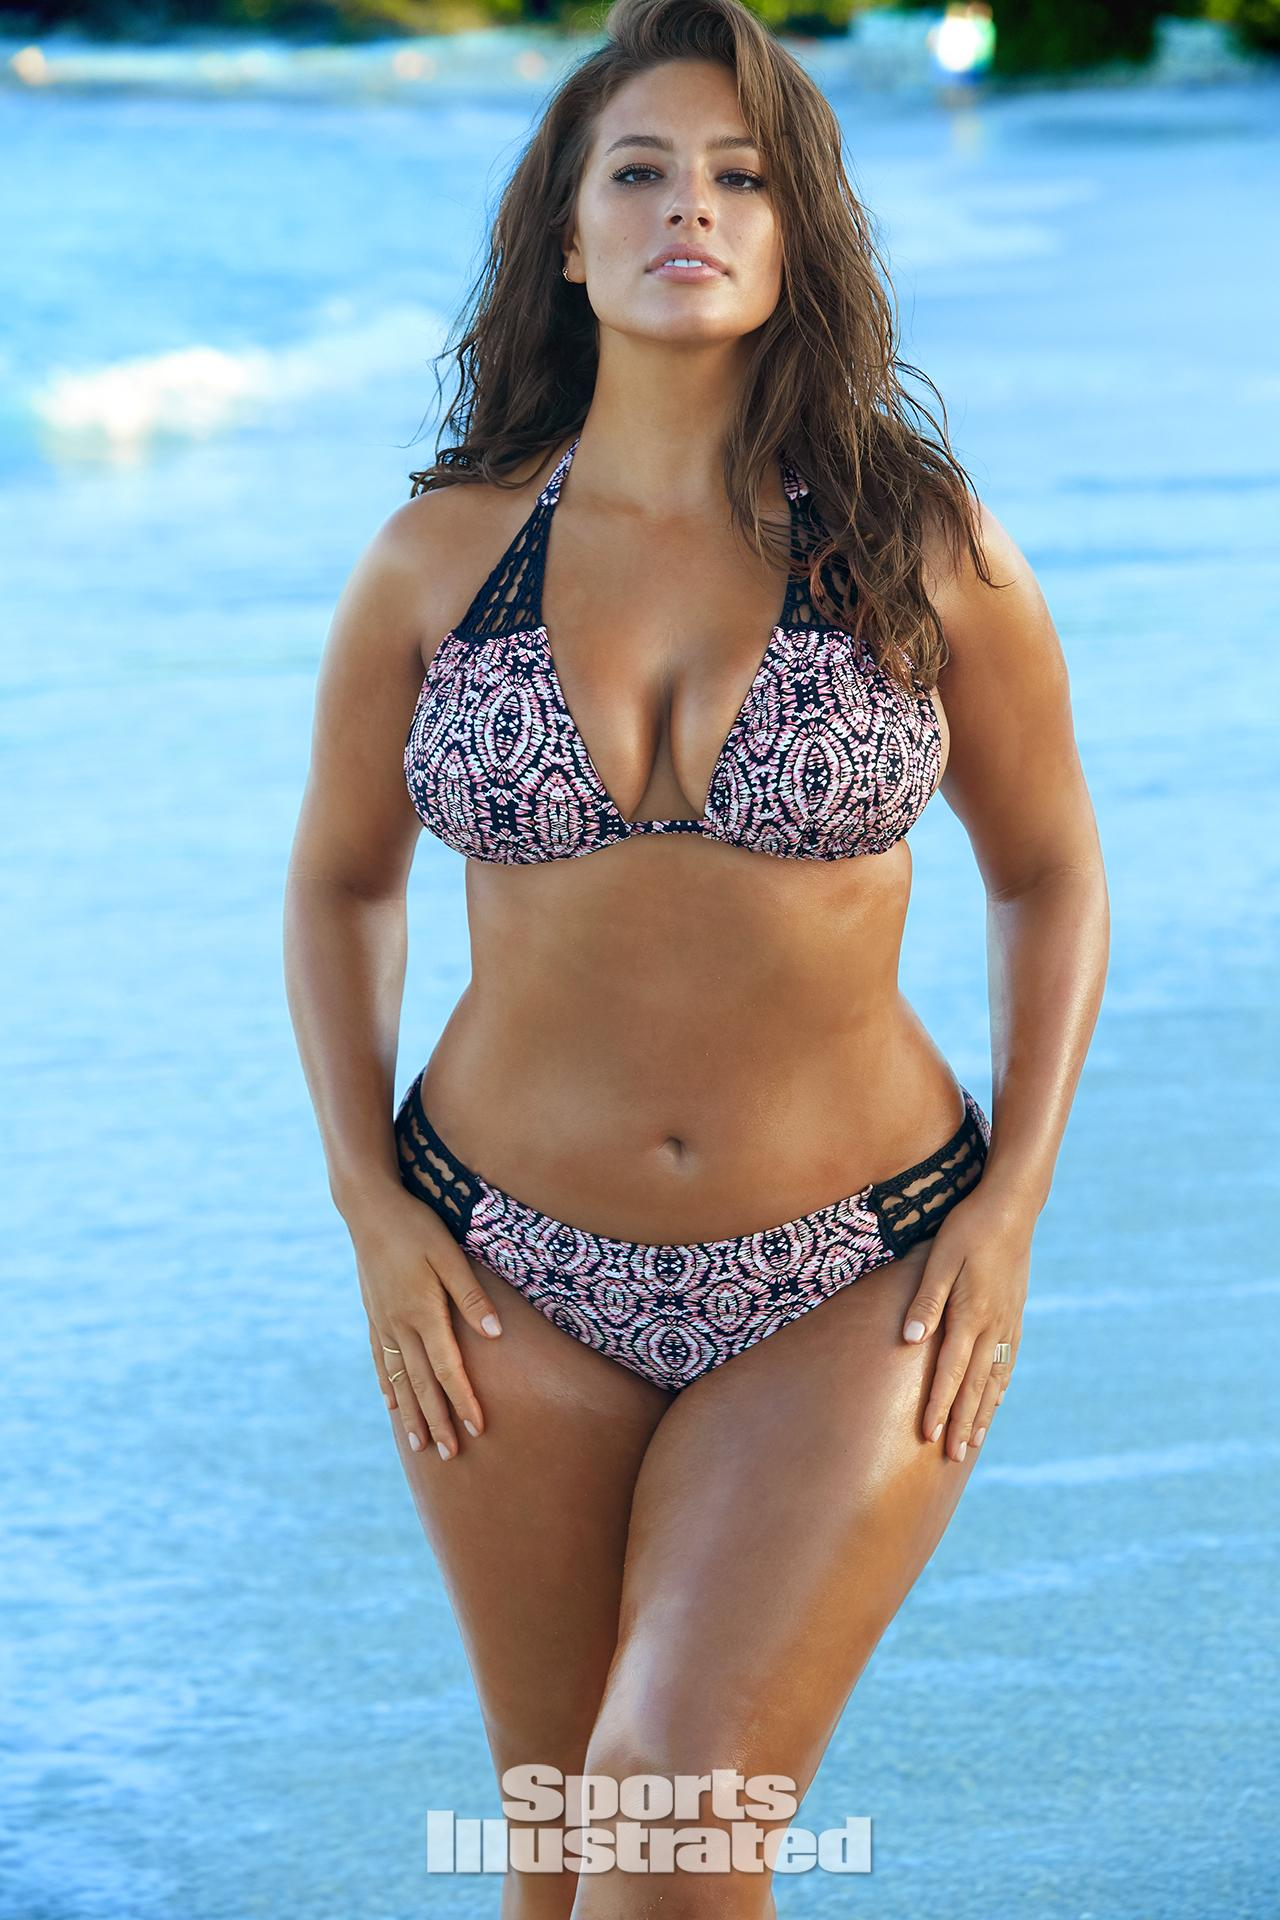 ashley graham swimsuit photos sports illustrated swimsuit 2016